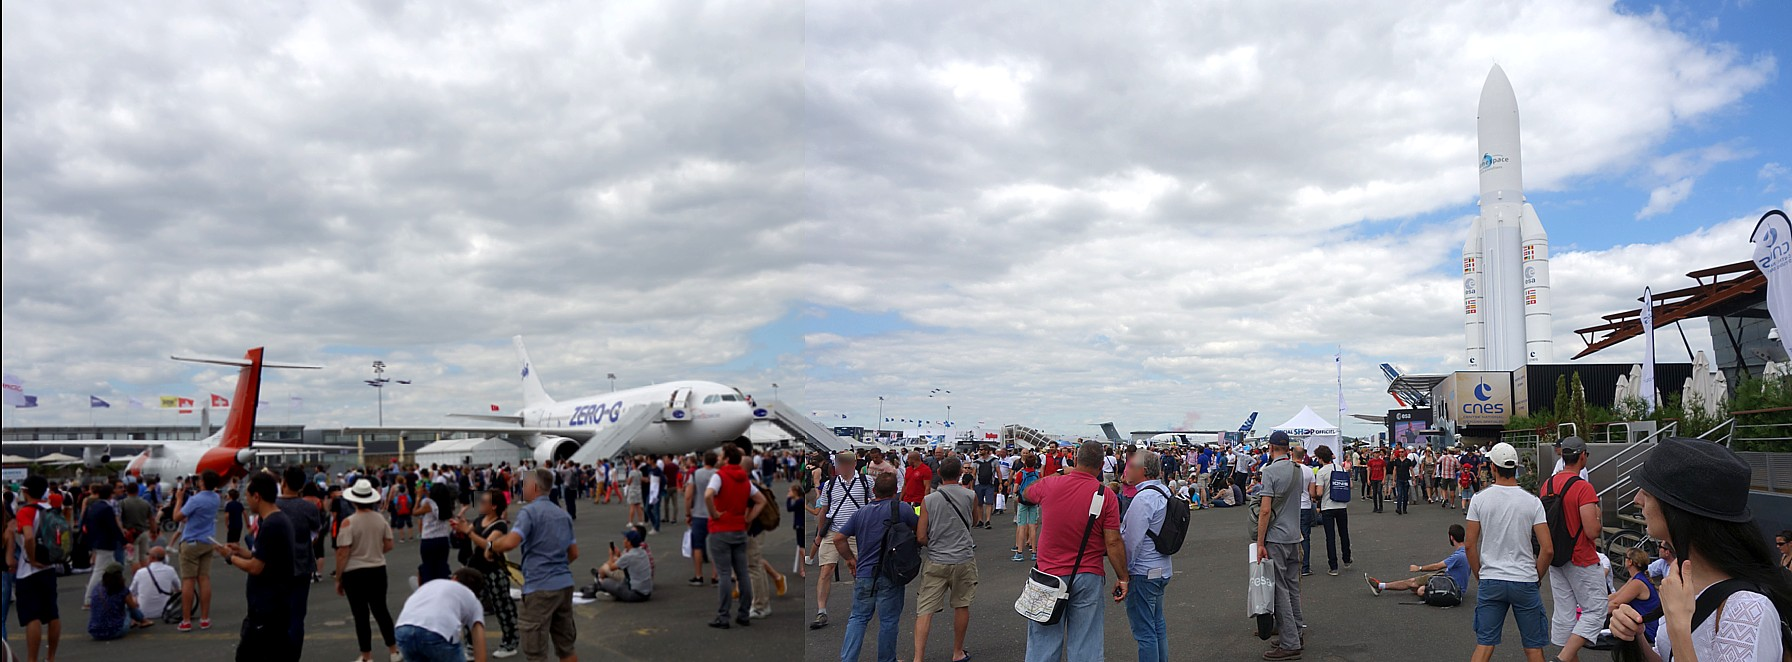 Mars et le salon du bourget 2017 apm association for Programme bourget 2017